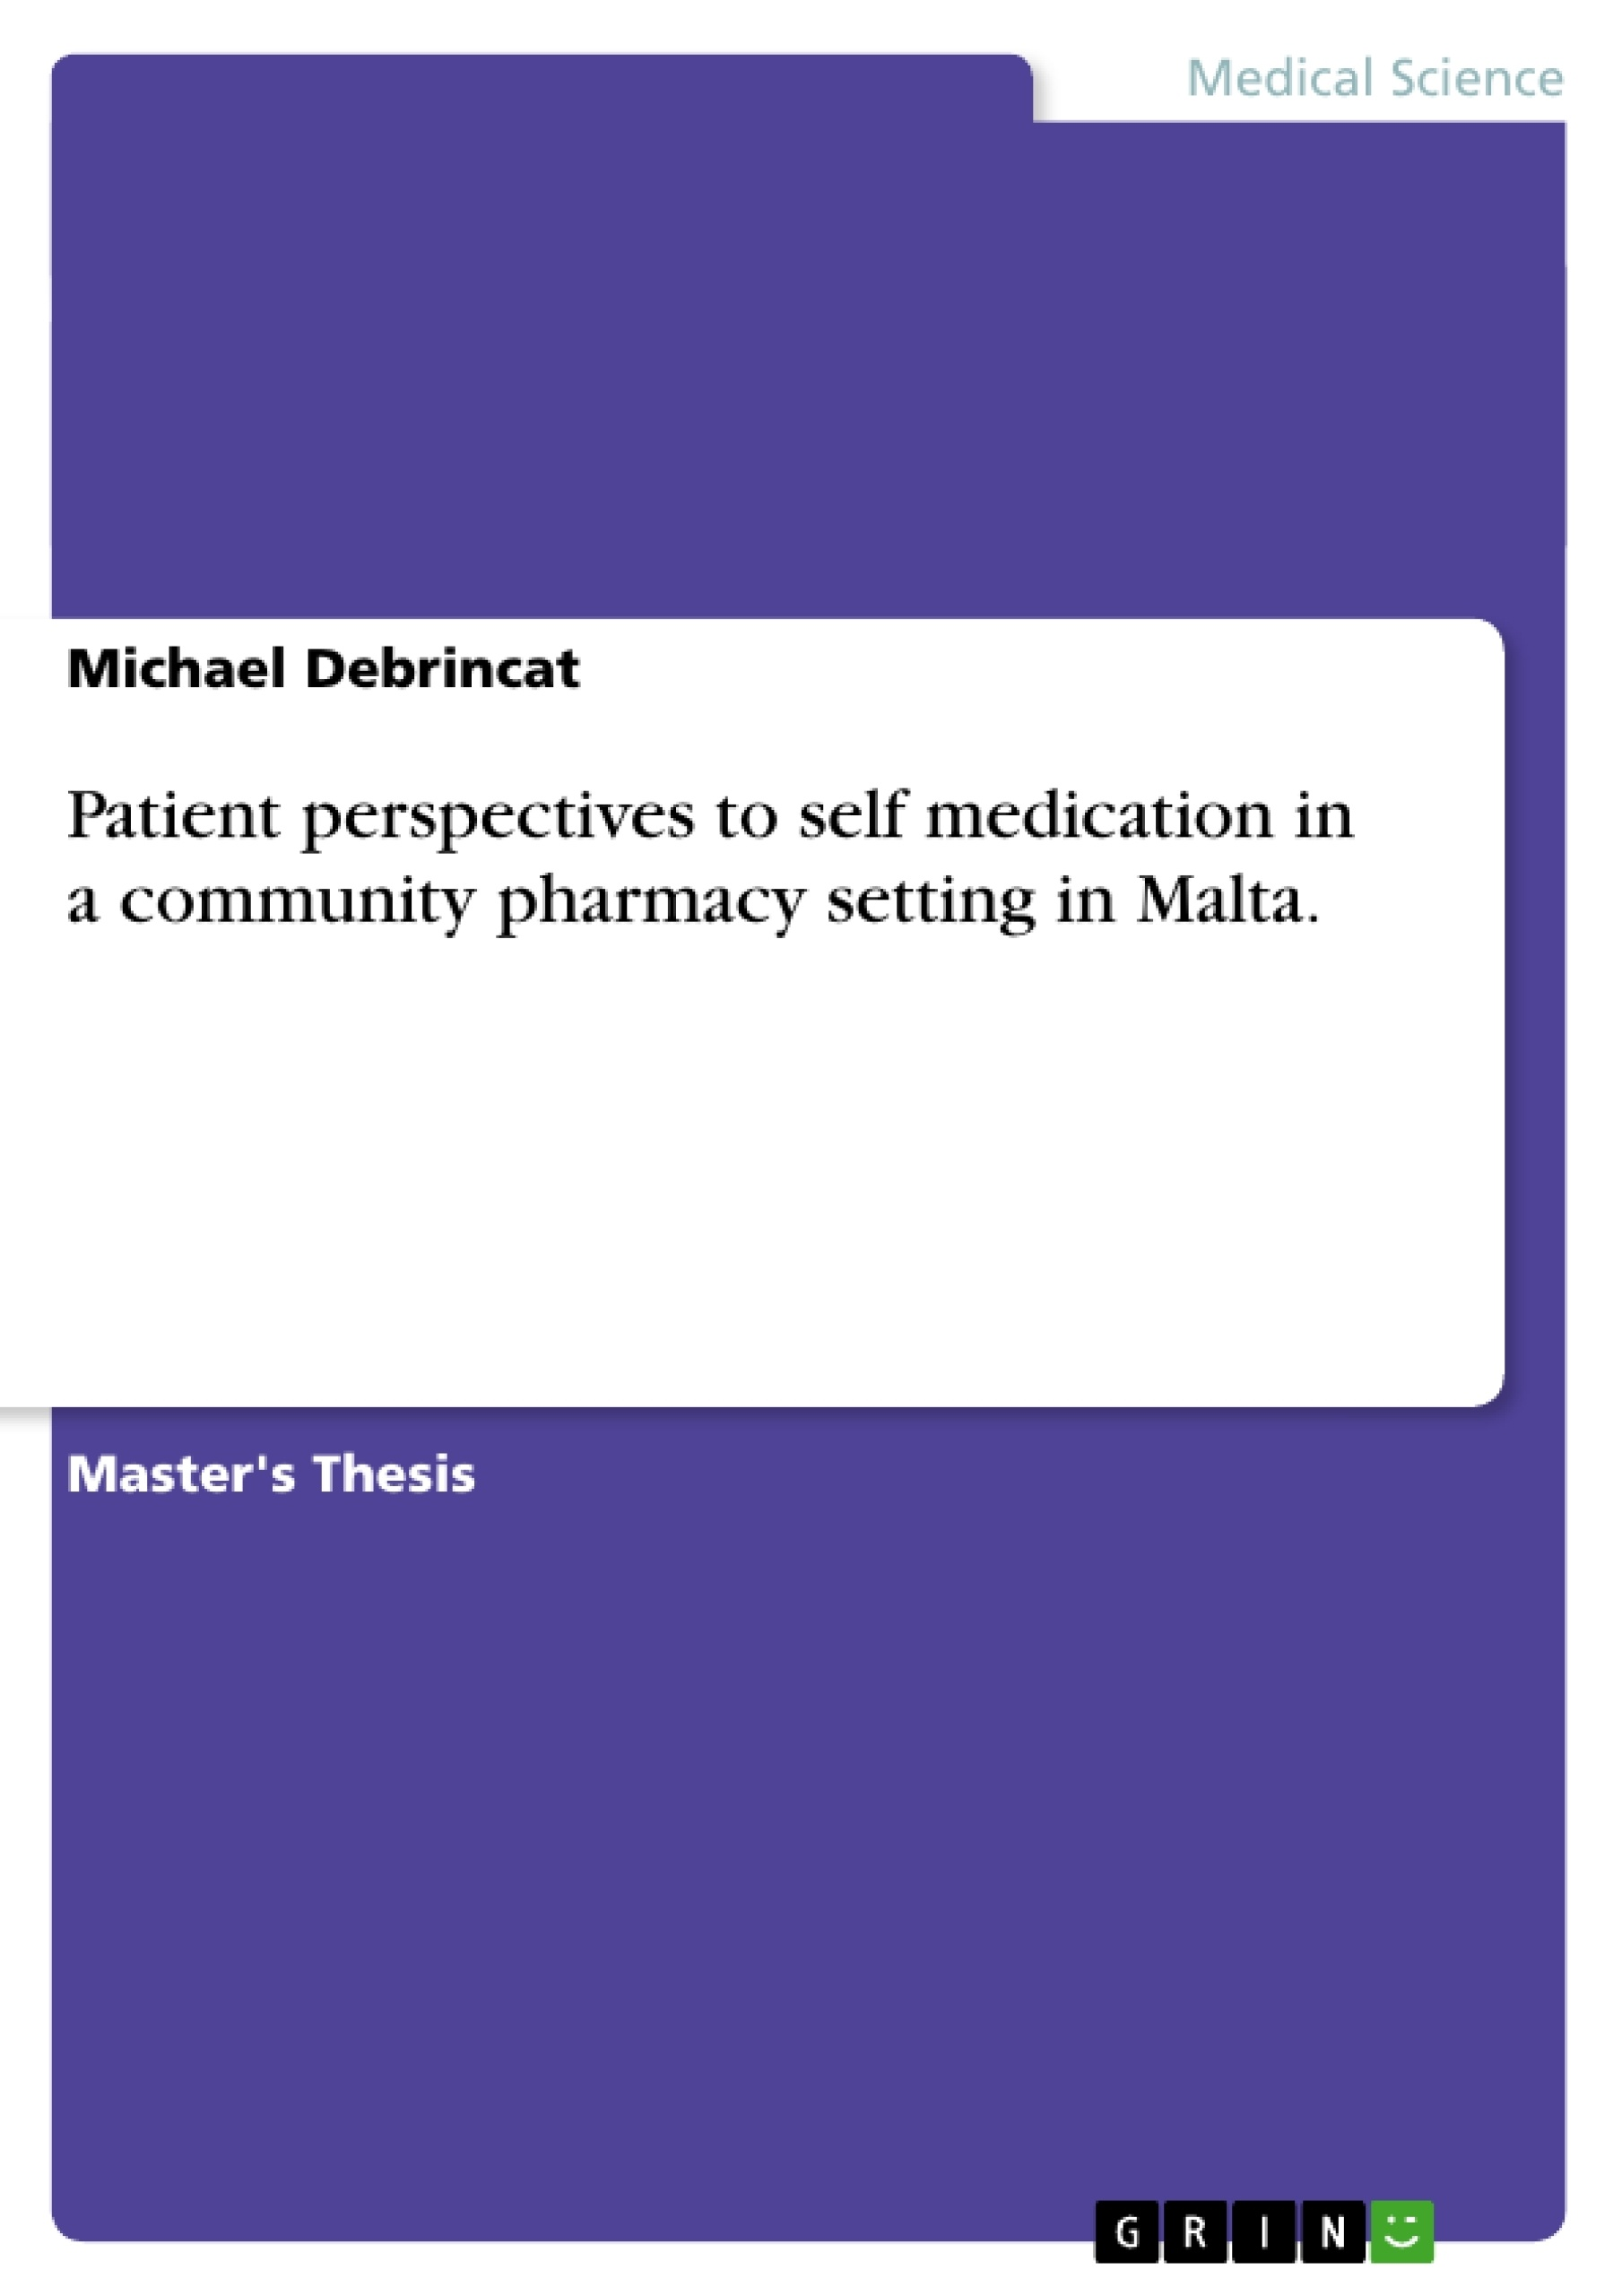 Title: Patient perspectives to self medication in a community pharmacy setting in Malta.